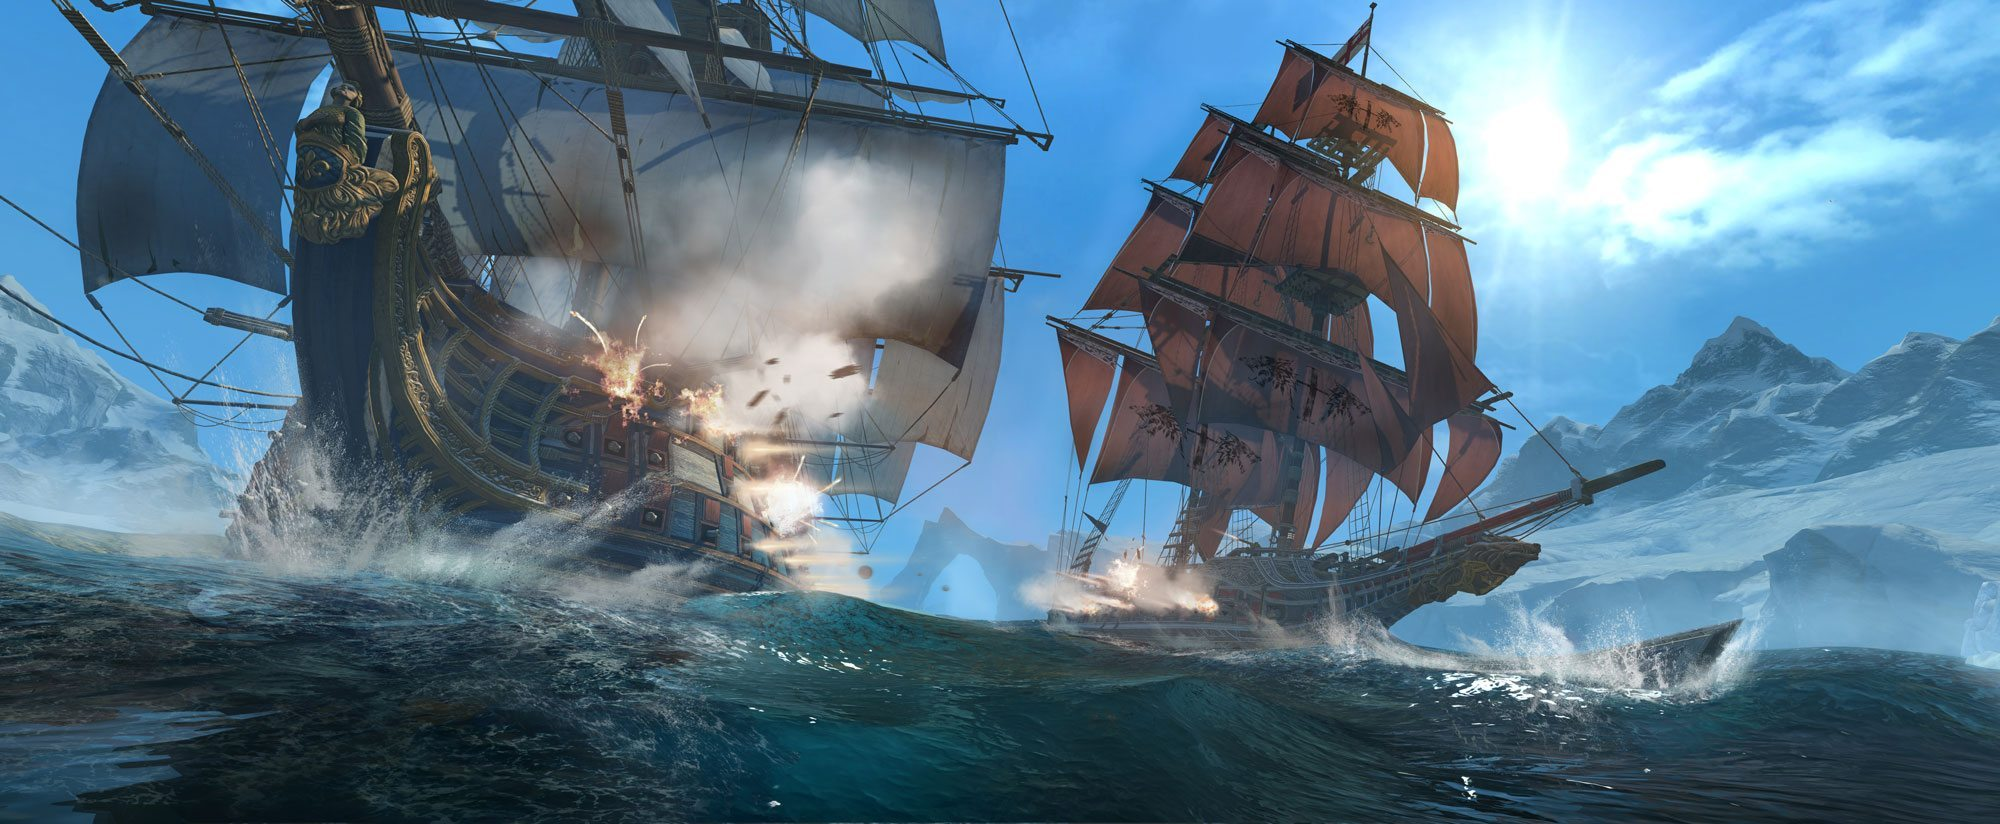 Assassins Creed Rogue Sea Battle BagoGames